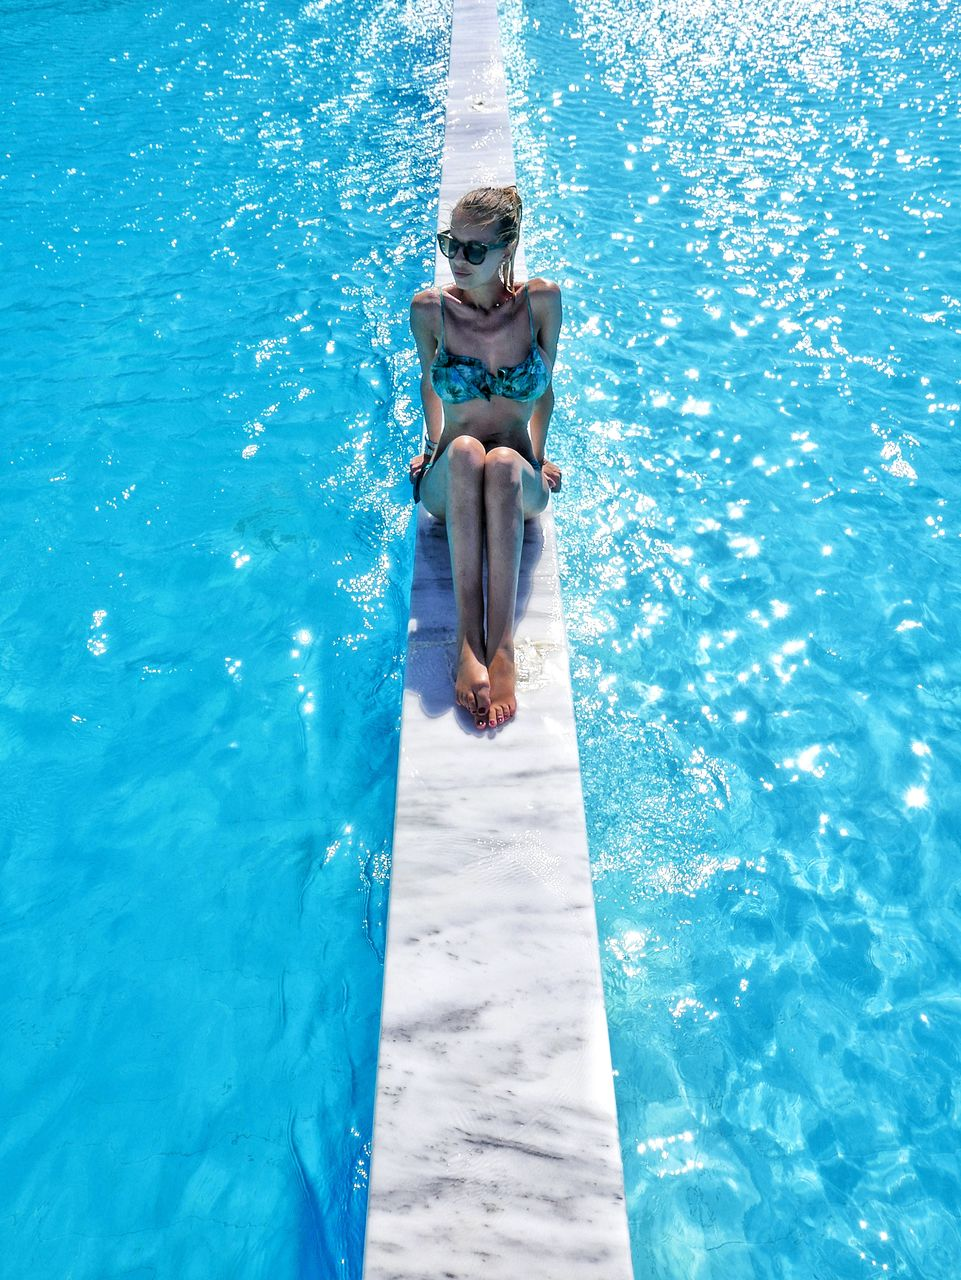 Young woman swimming in pool during summer